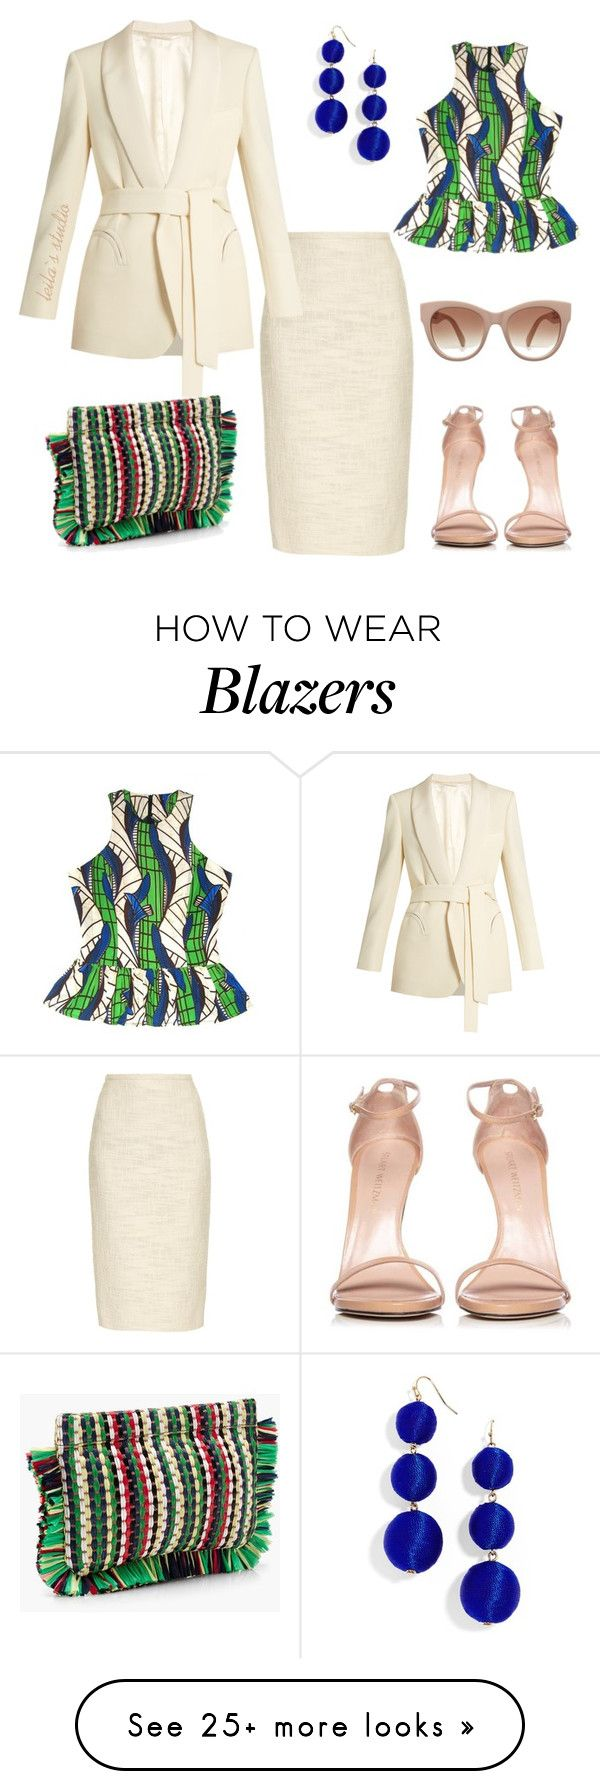 """#232"" by leila-image-style on Polyvore featuring Rochas, Blazé Milano, FAIR+true, J.Crew, Stuart Weitzman and BaubleBar"